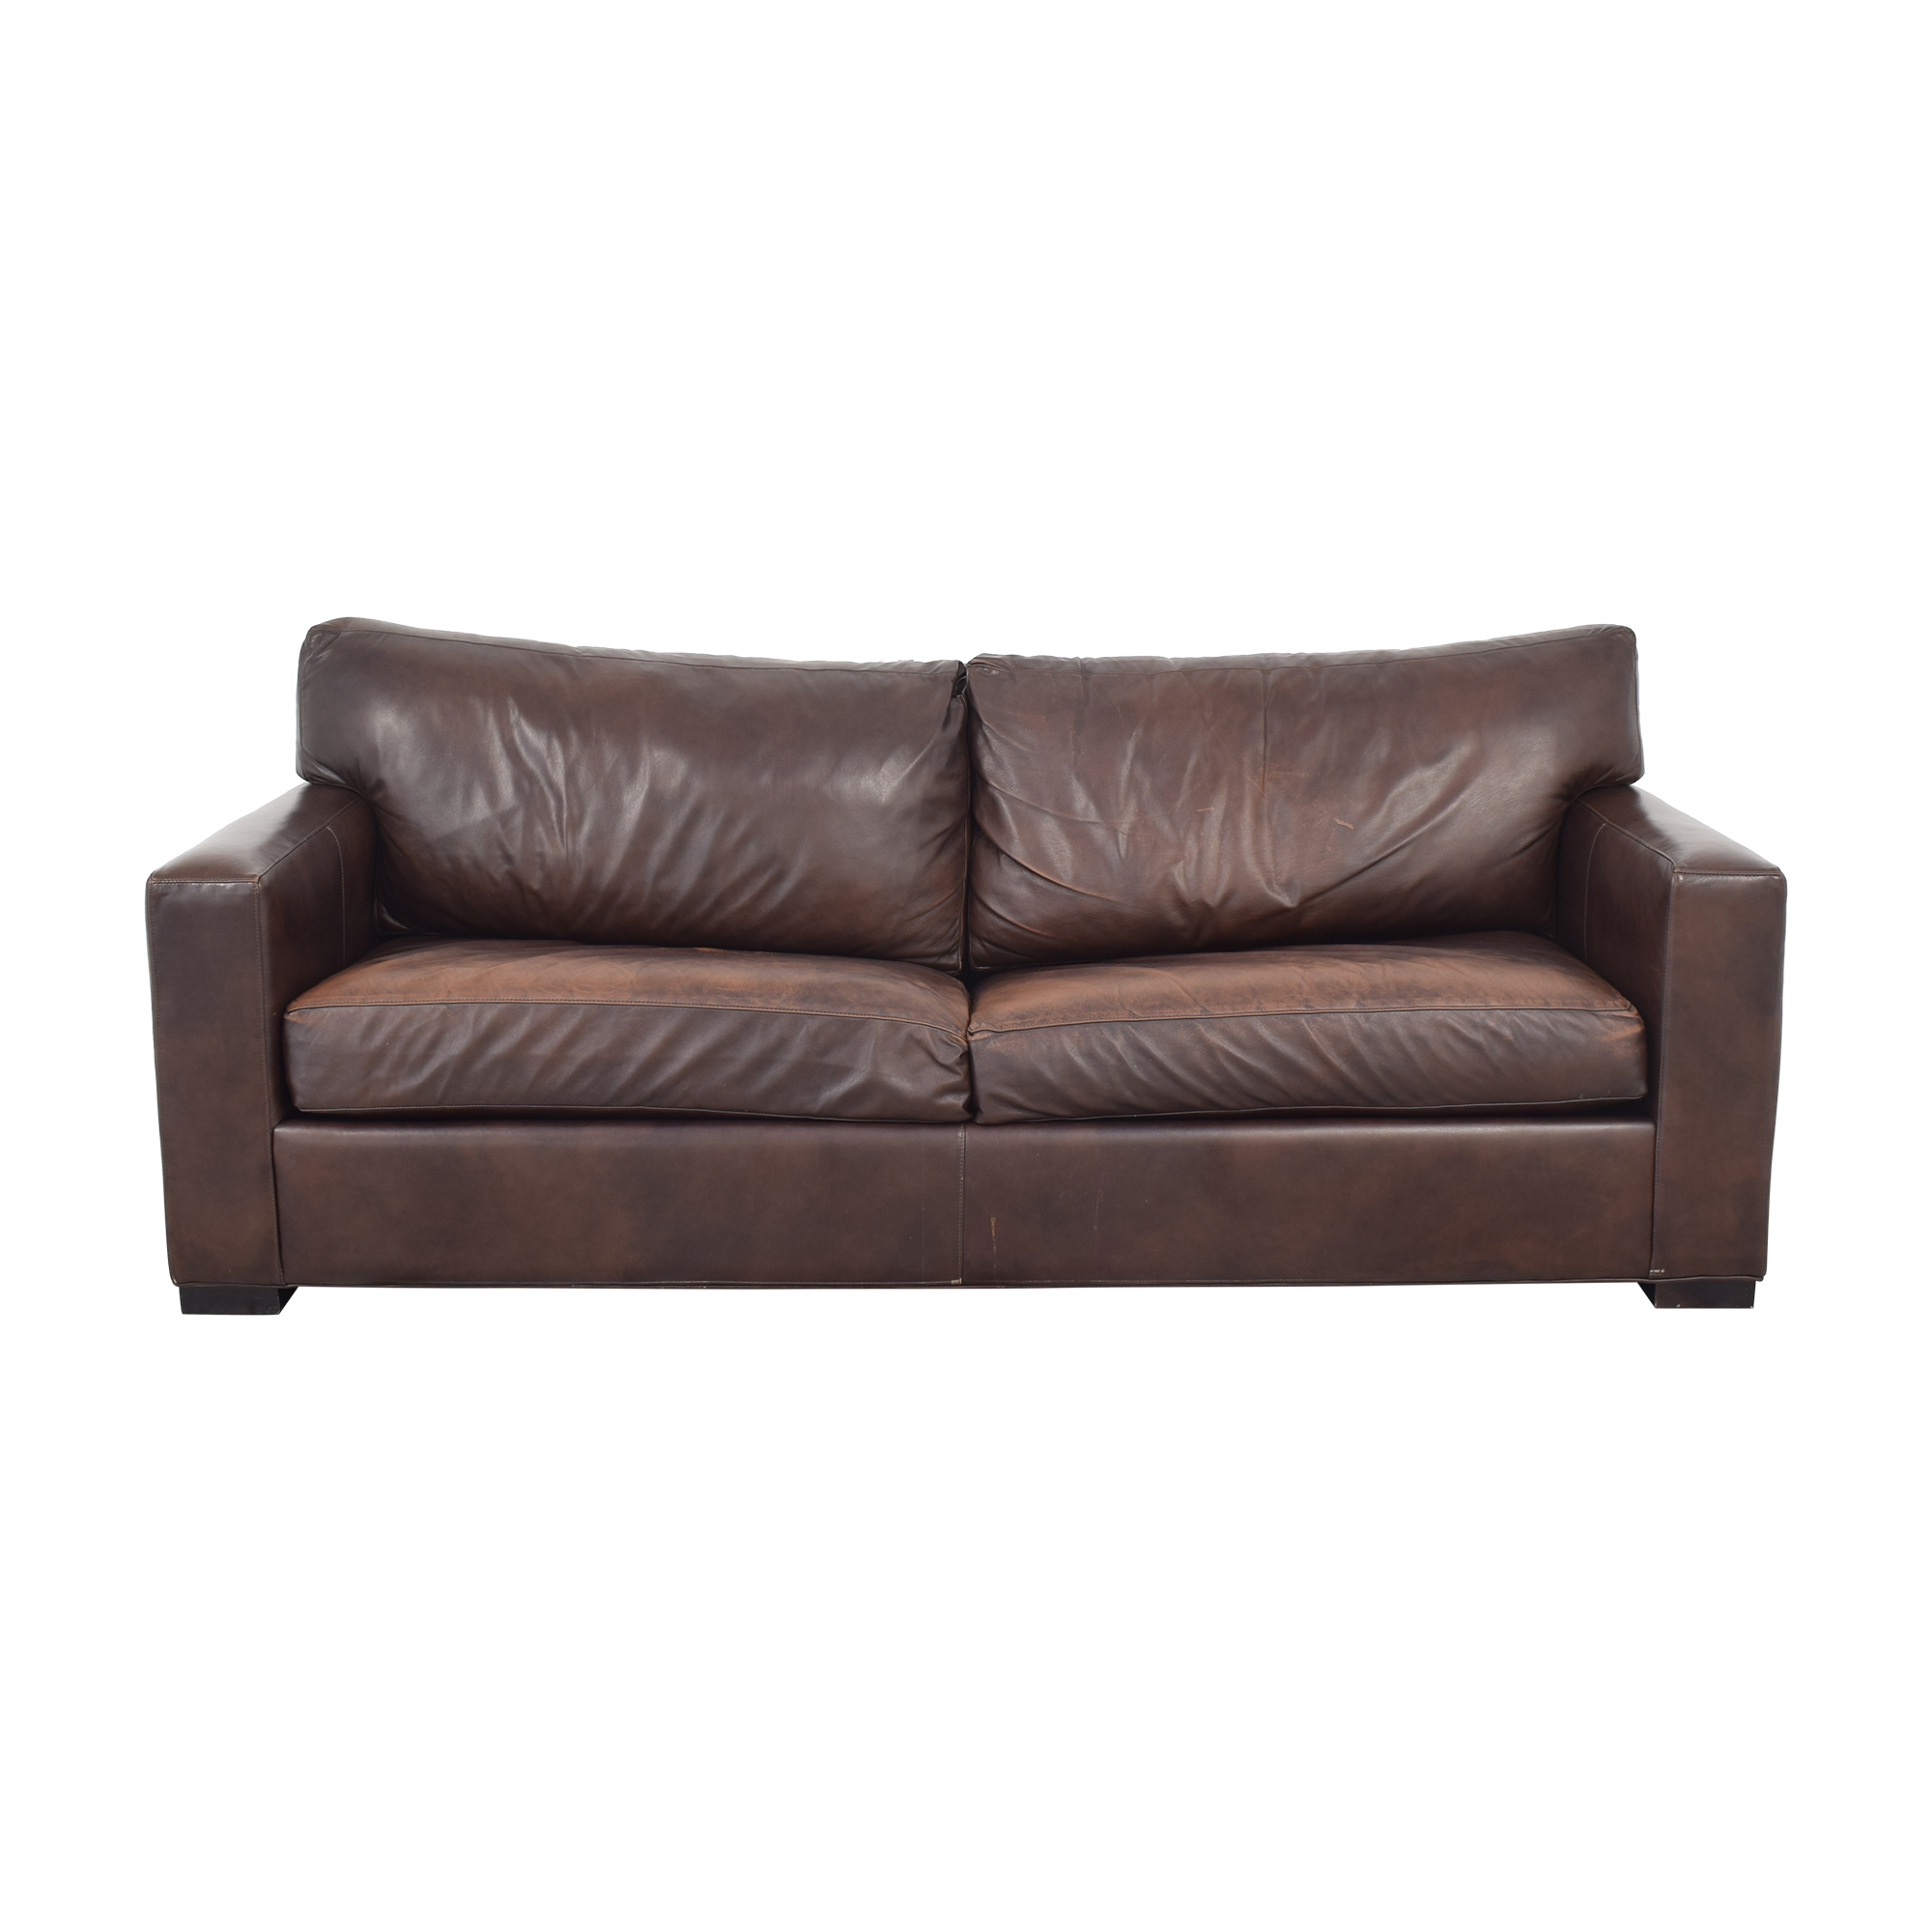 Crate & Barrel Axis II Leather Two Seat Queen Sleeper Sofa sale